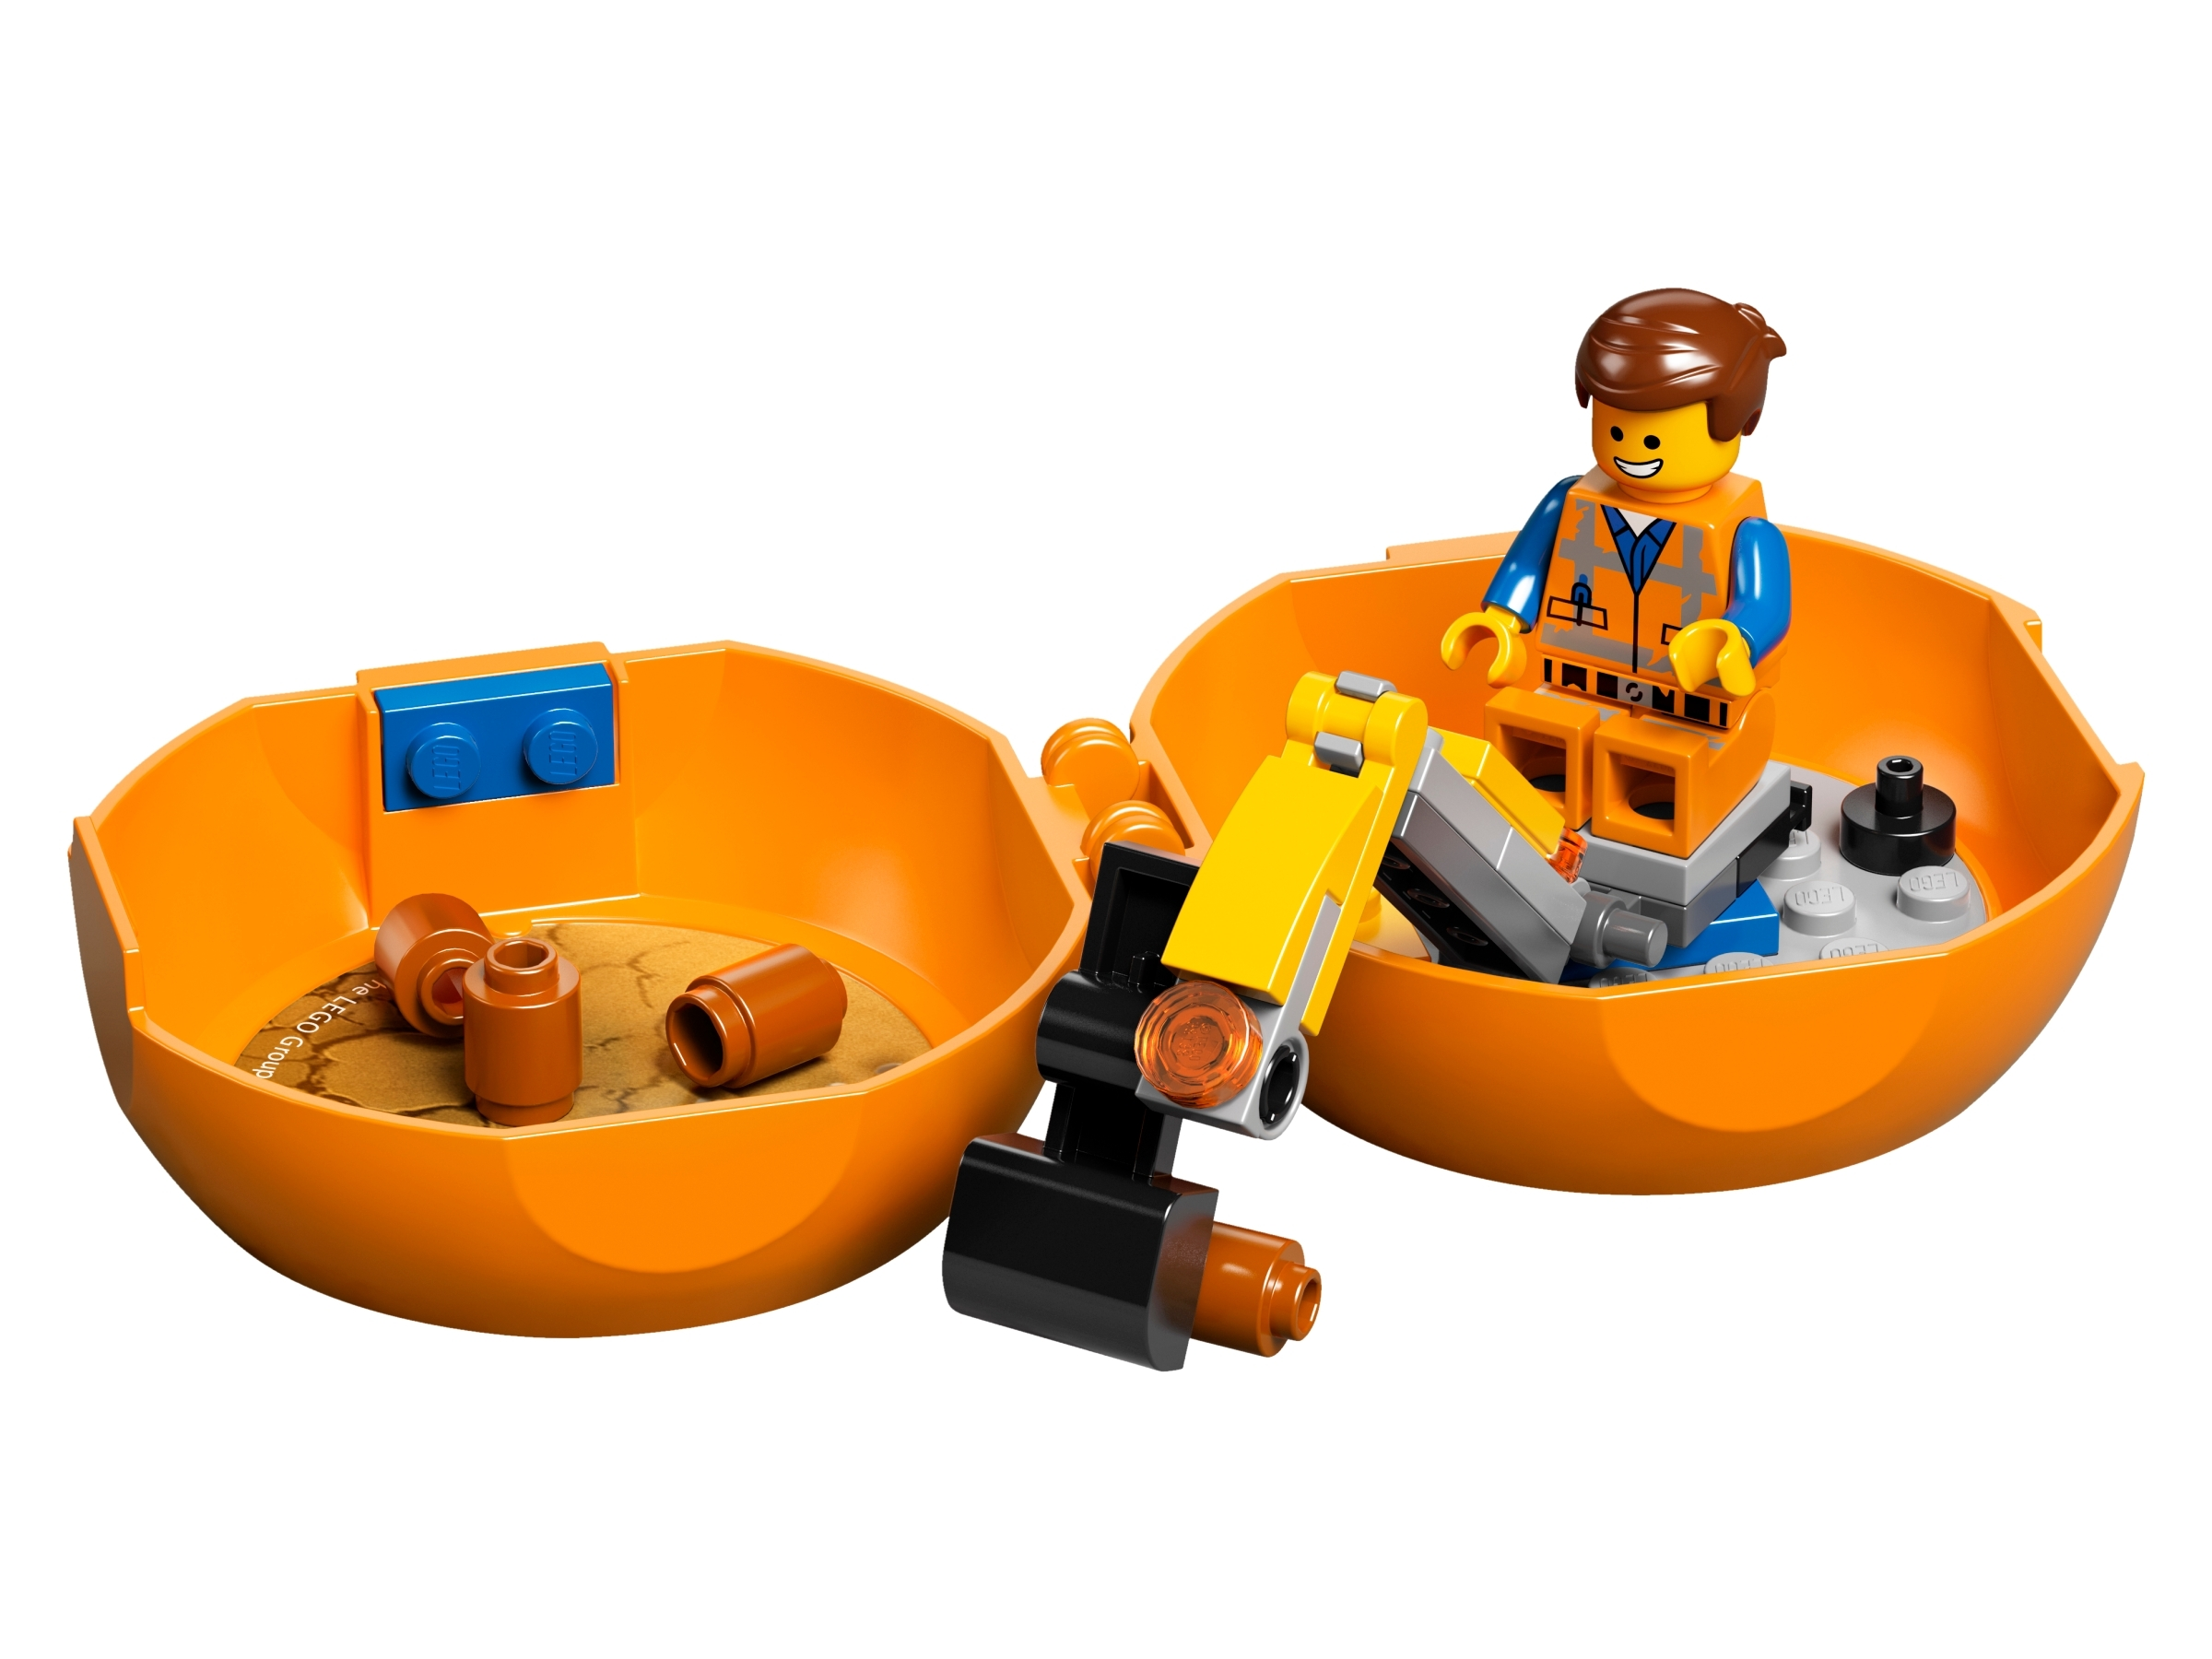 Emmet S Construction Pod 853874 The Lego Movie 2 Buy Online At The Official Lego Shop Us